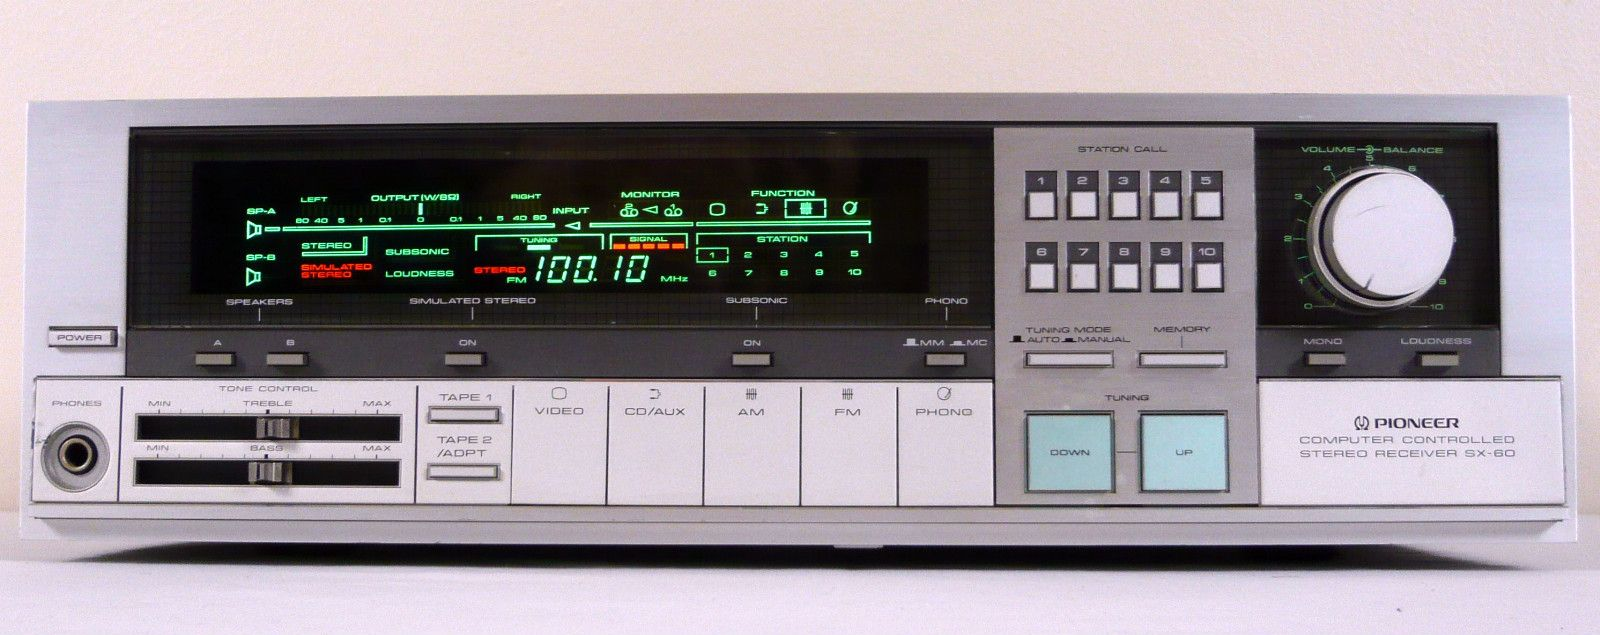 pioneer sx 60 vintage computer controlled stereo receiver. Black Bedroom Furniture Sets. Home Design Ideas